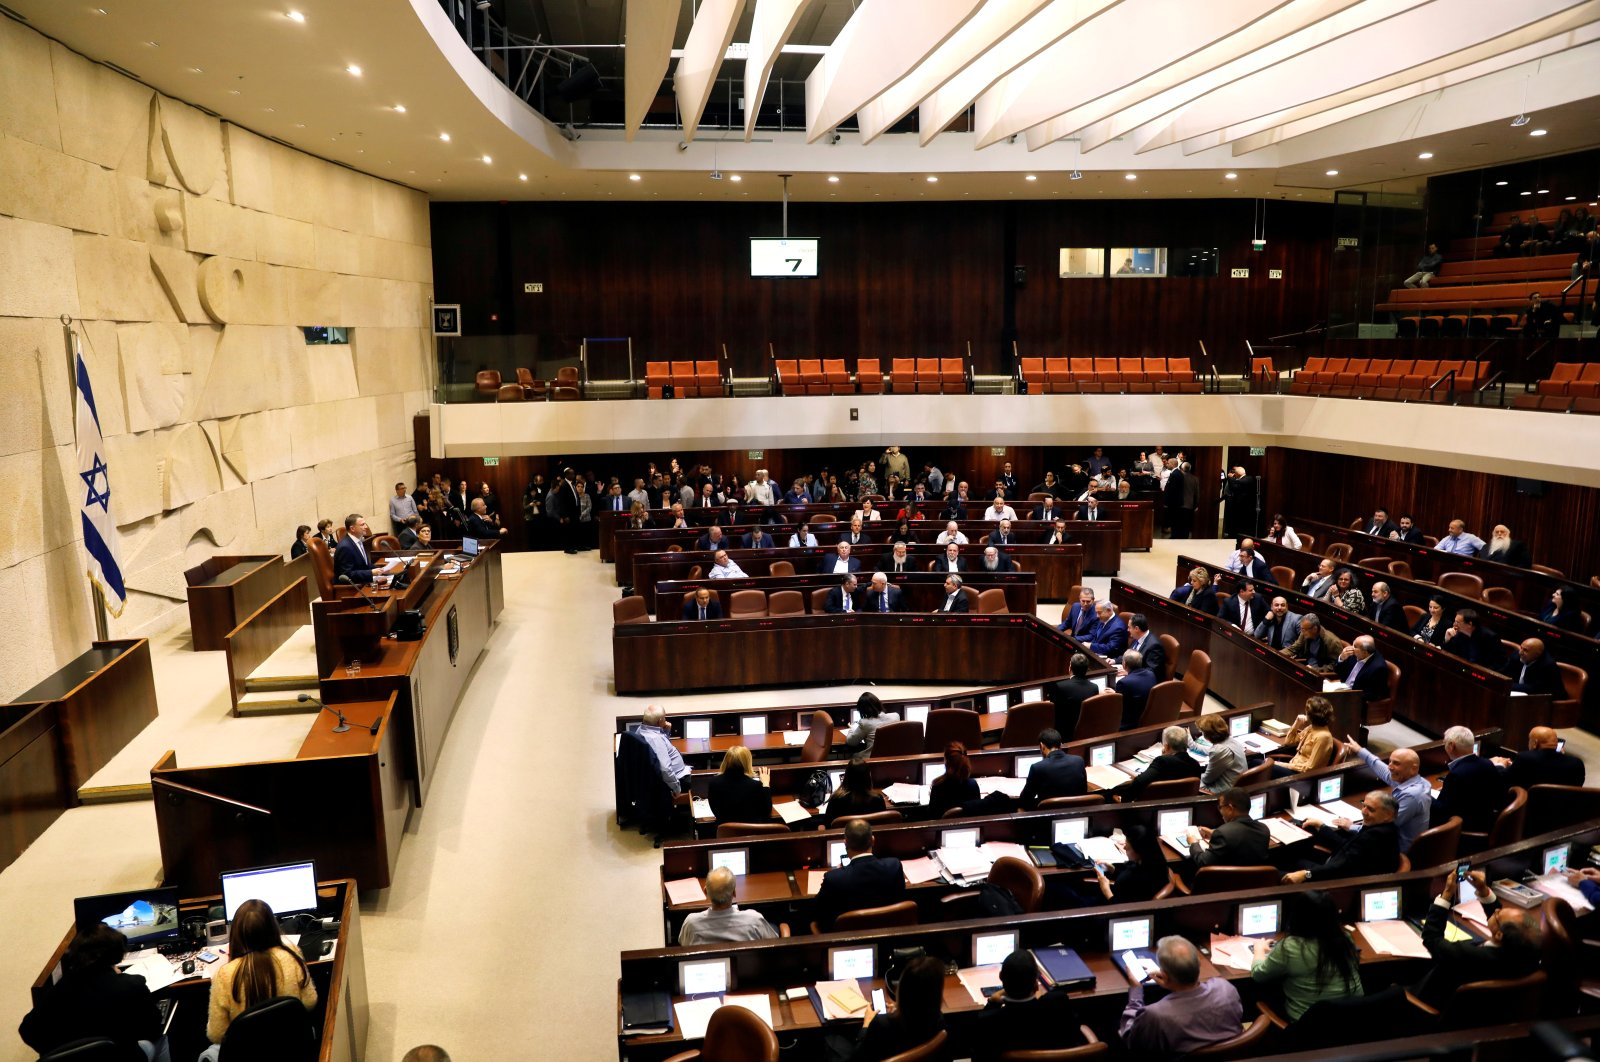 A general view shows the plenum at the Knesset, Israel's parliament, in Jerusalem on Dec. 26, 2018. (Reuters File Photo)